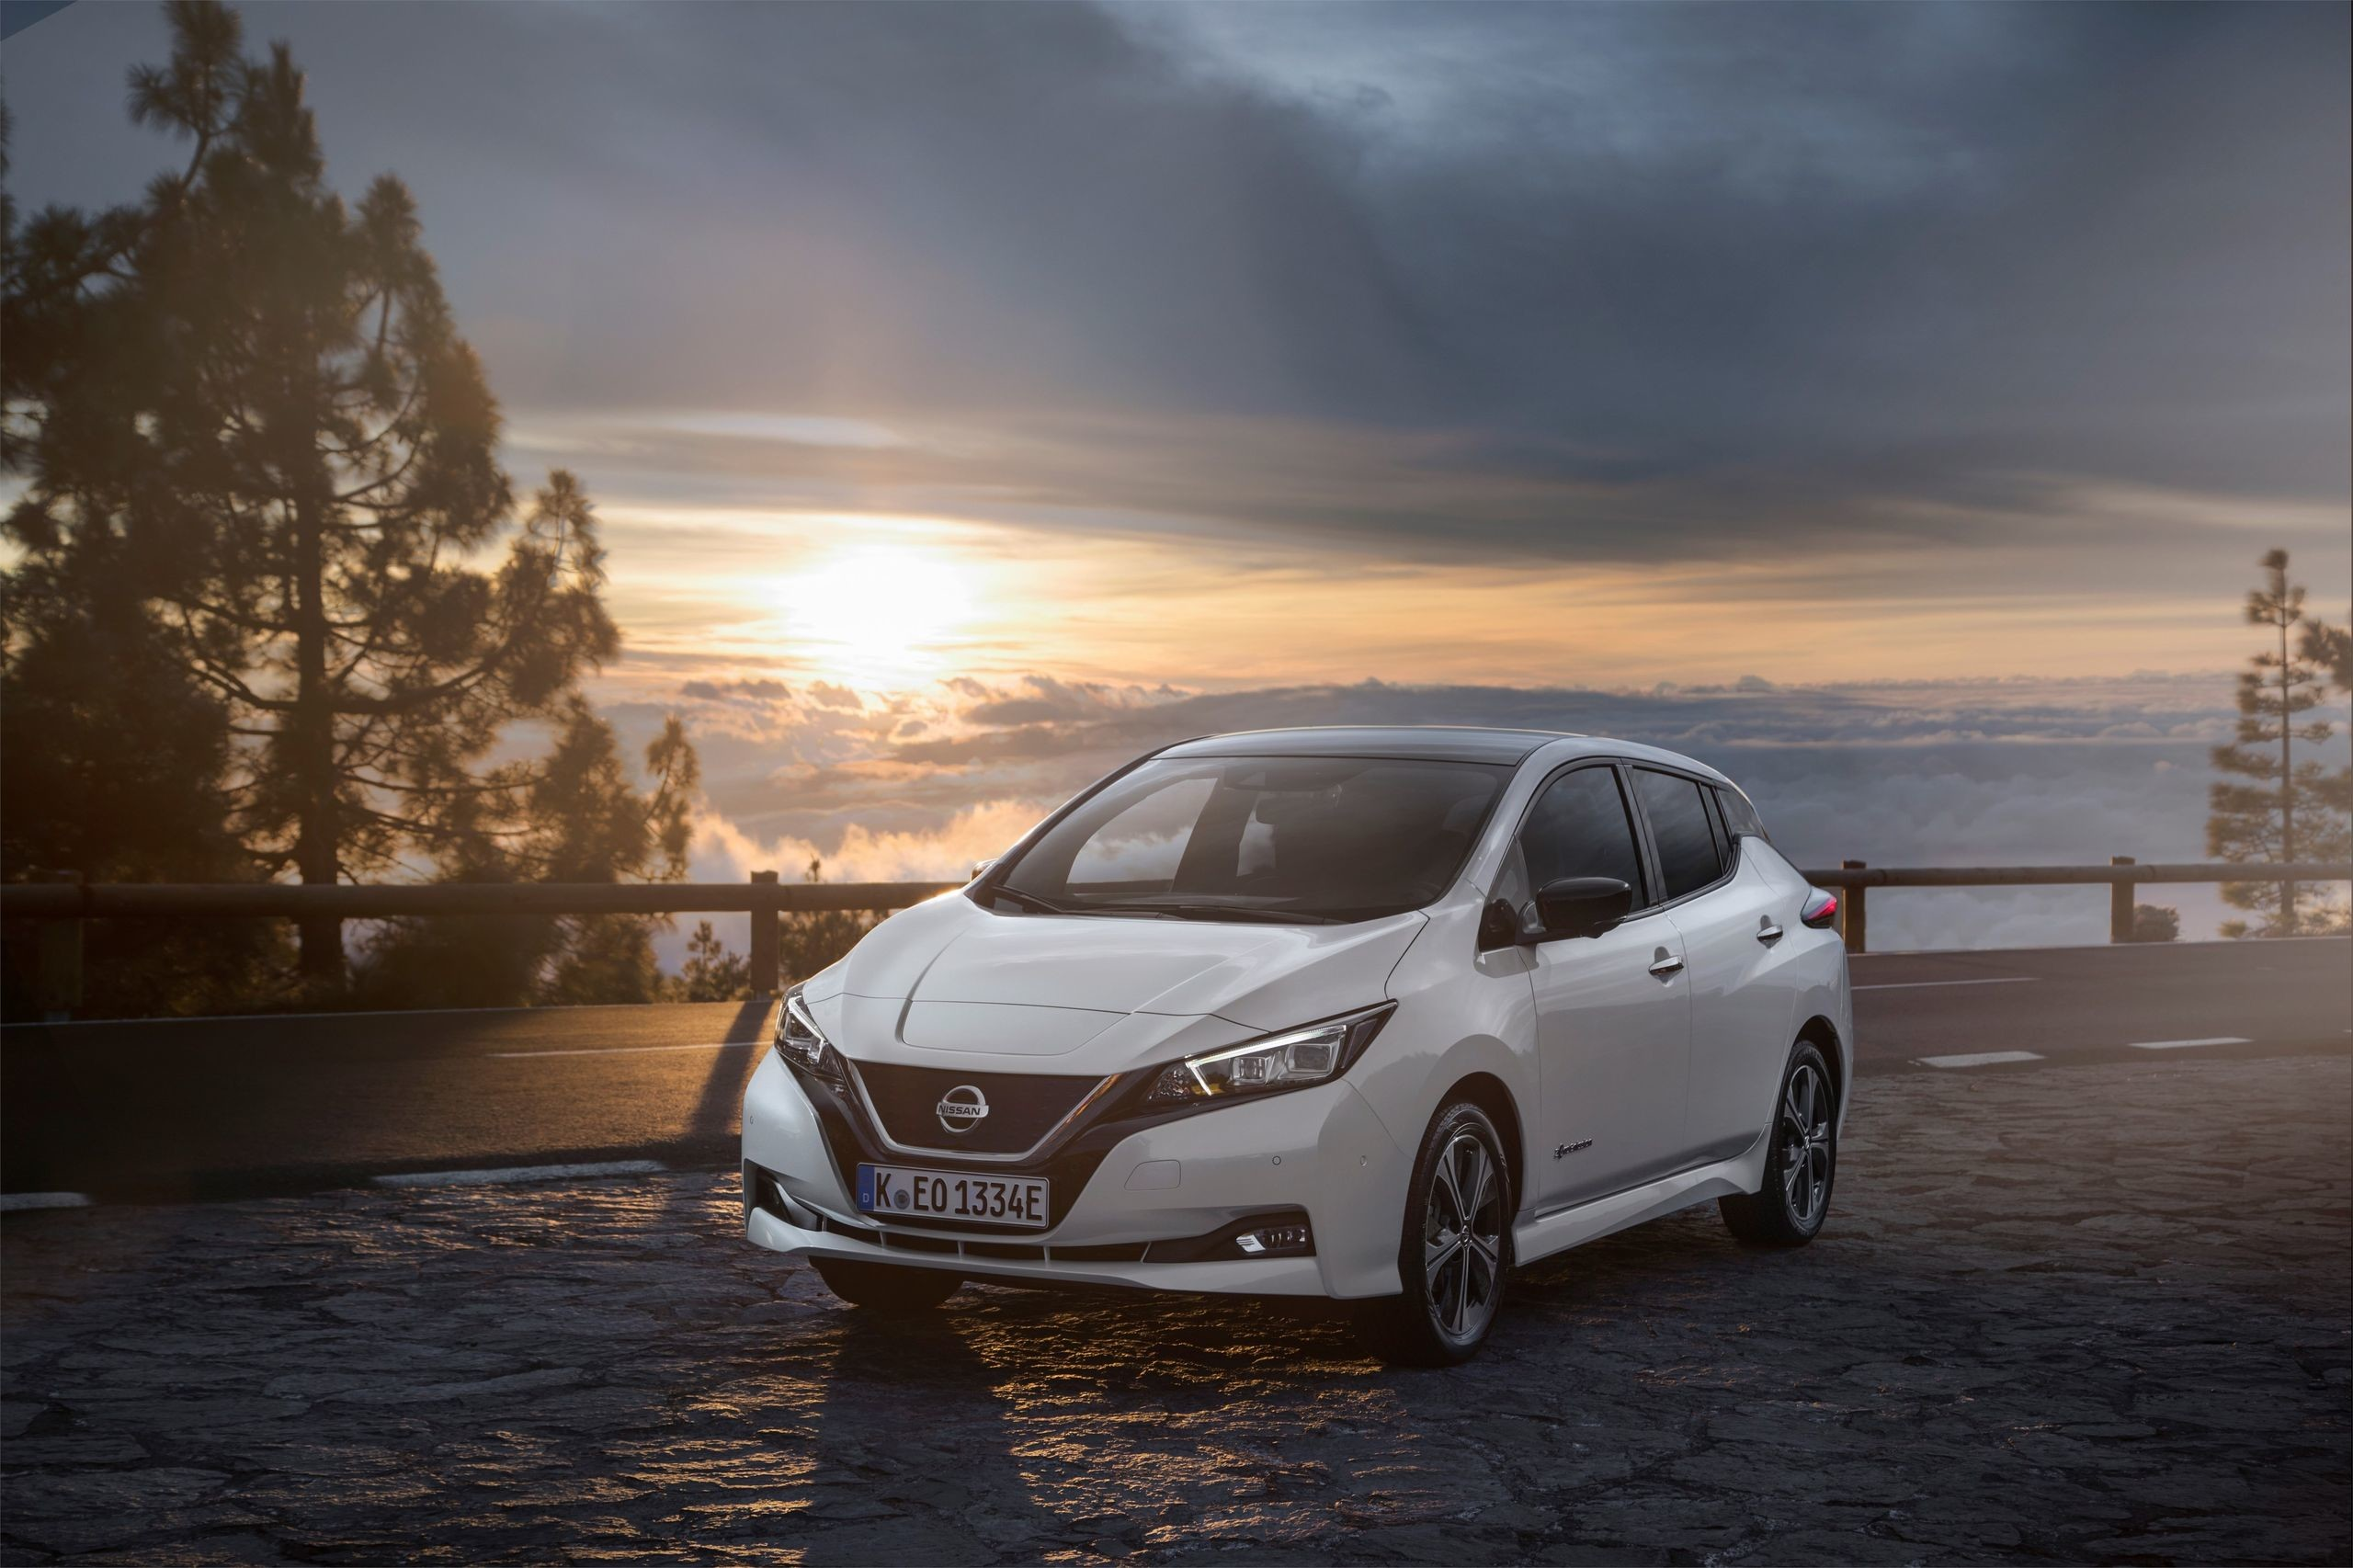 2560x1706 Wallpaper Wednesday: 2018 Nissan LEAF – Top 15 Images